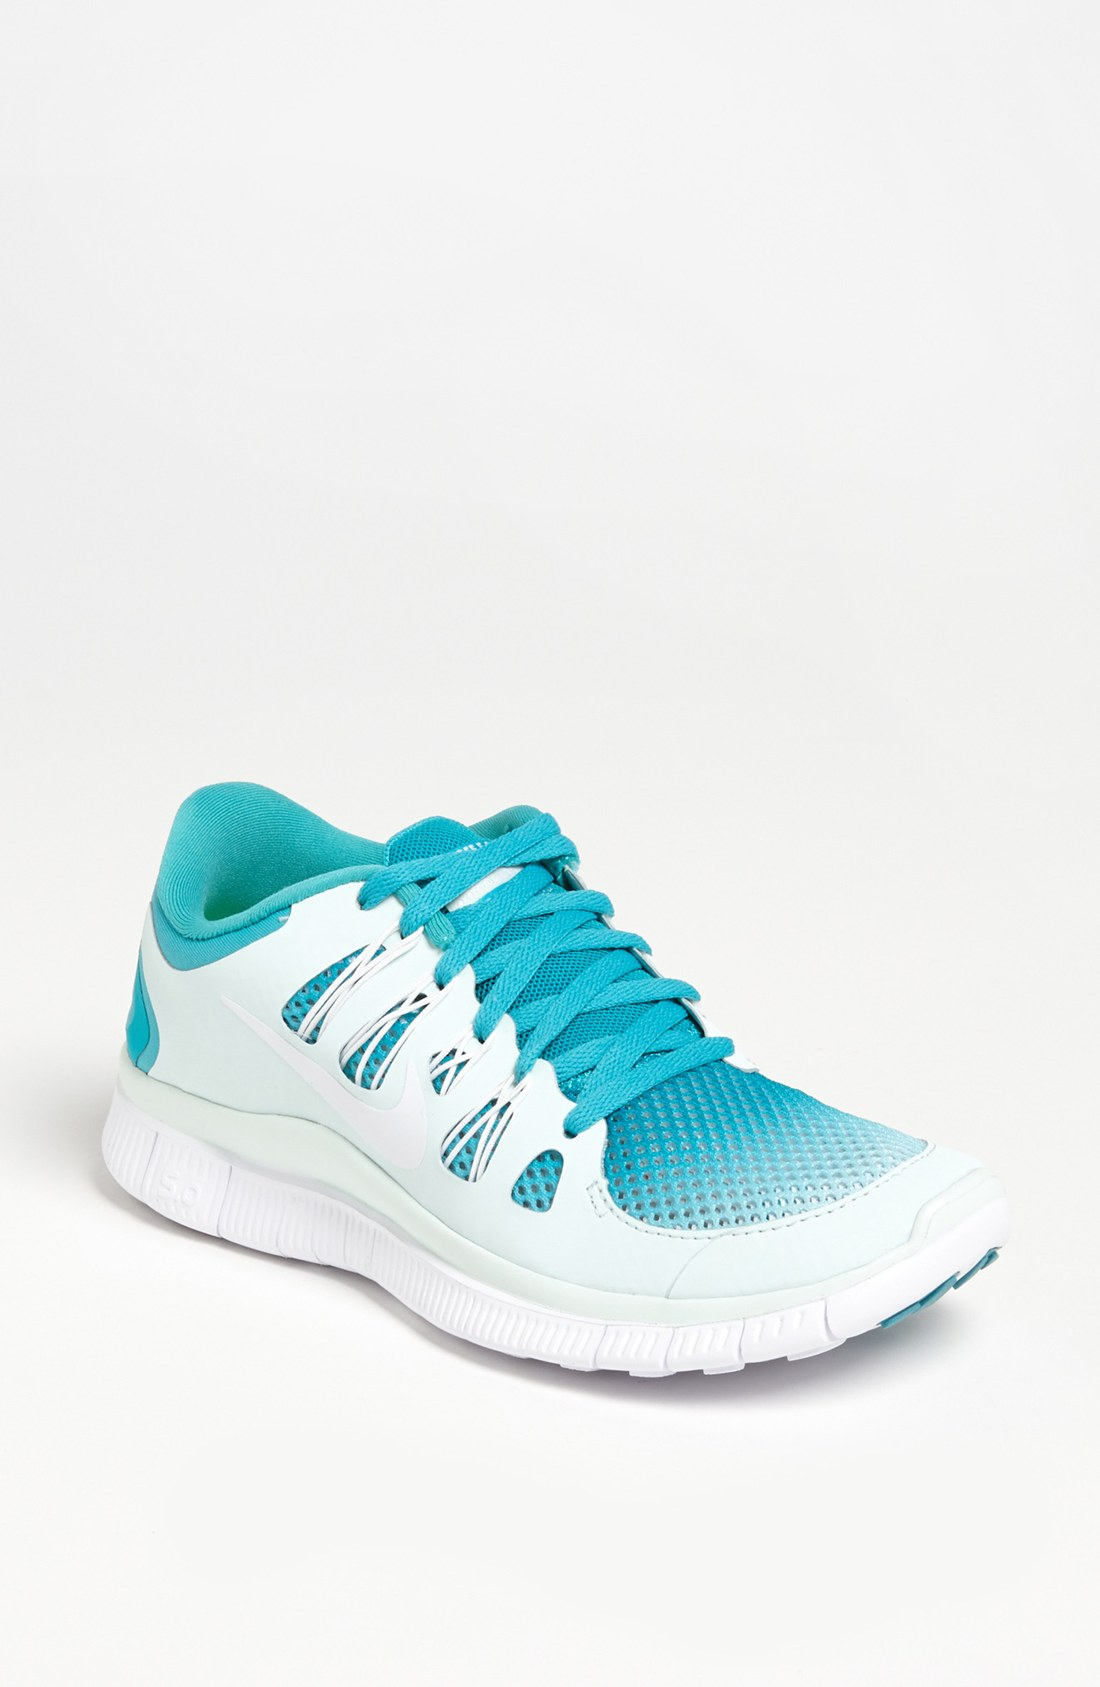 Elegant Nike Free 50 TR Fit 5 Womens Running Shoes Turquoise White For Cheap